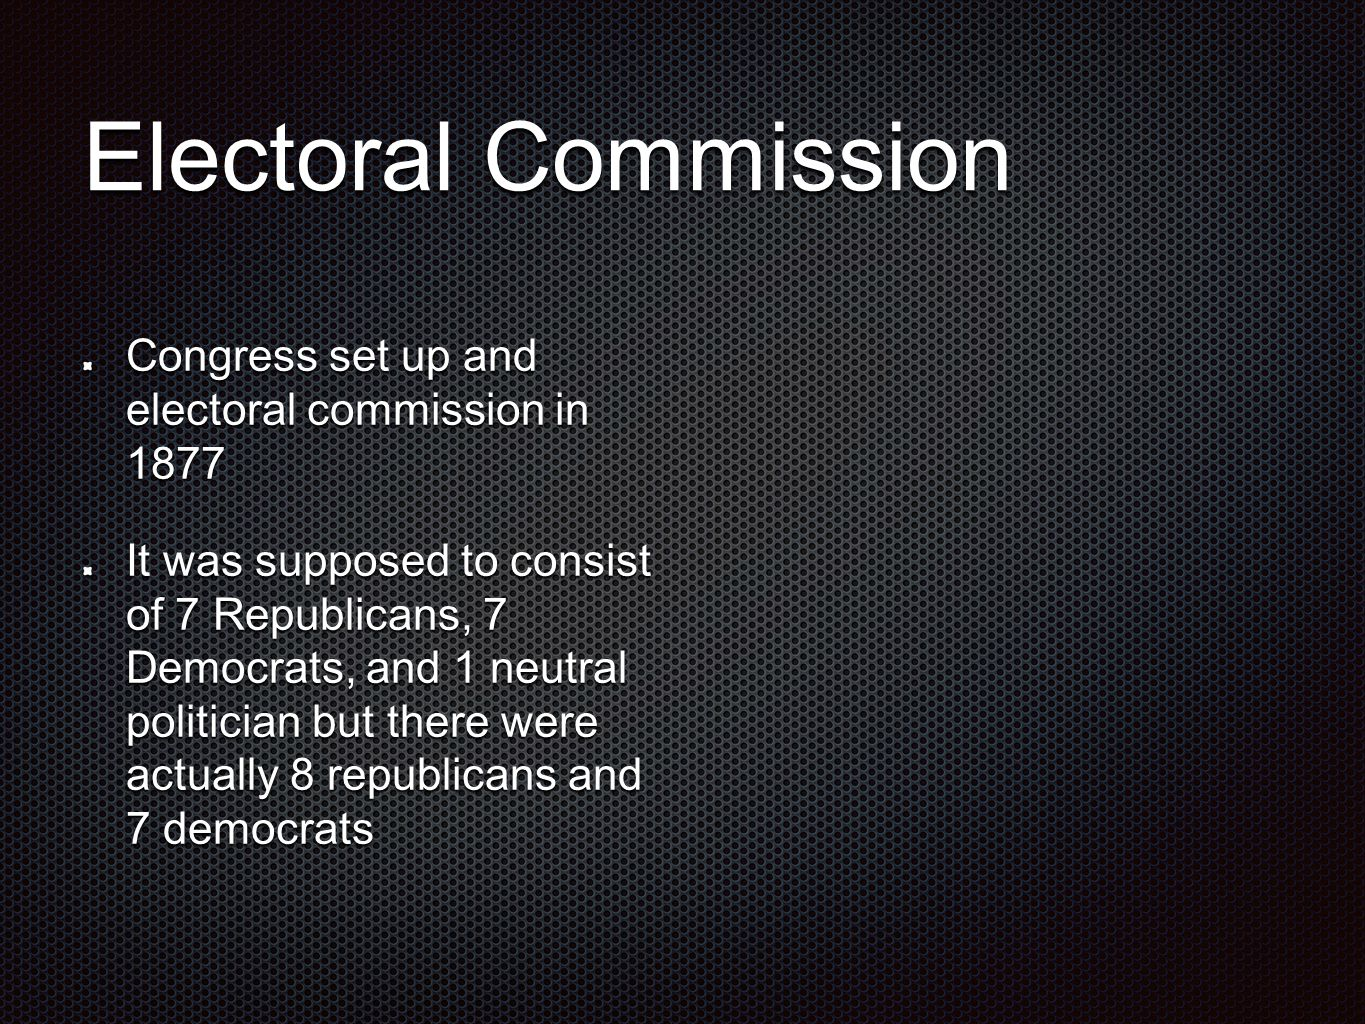 Electoral Commission Congress set up and electoral commission in 1877 It was supposed to consist of 7 Republicans, 7 Democrats, and 1 neutral politician but there were actually 8 republicans and 7 democrats